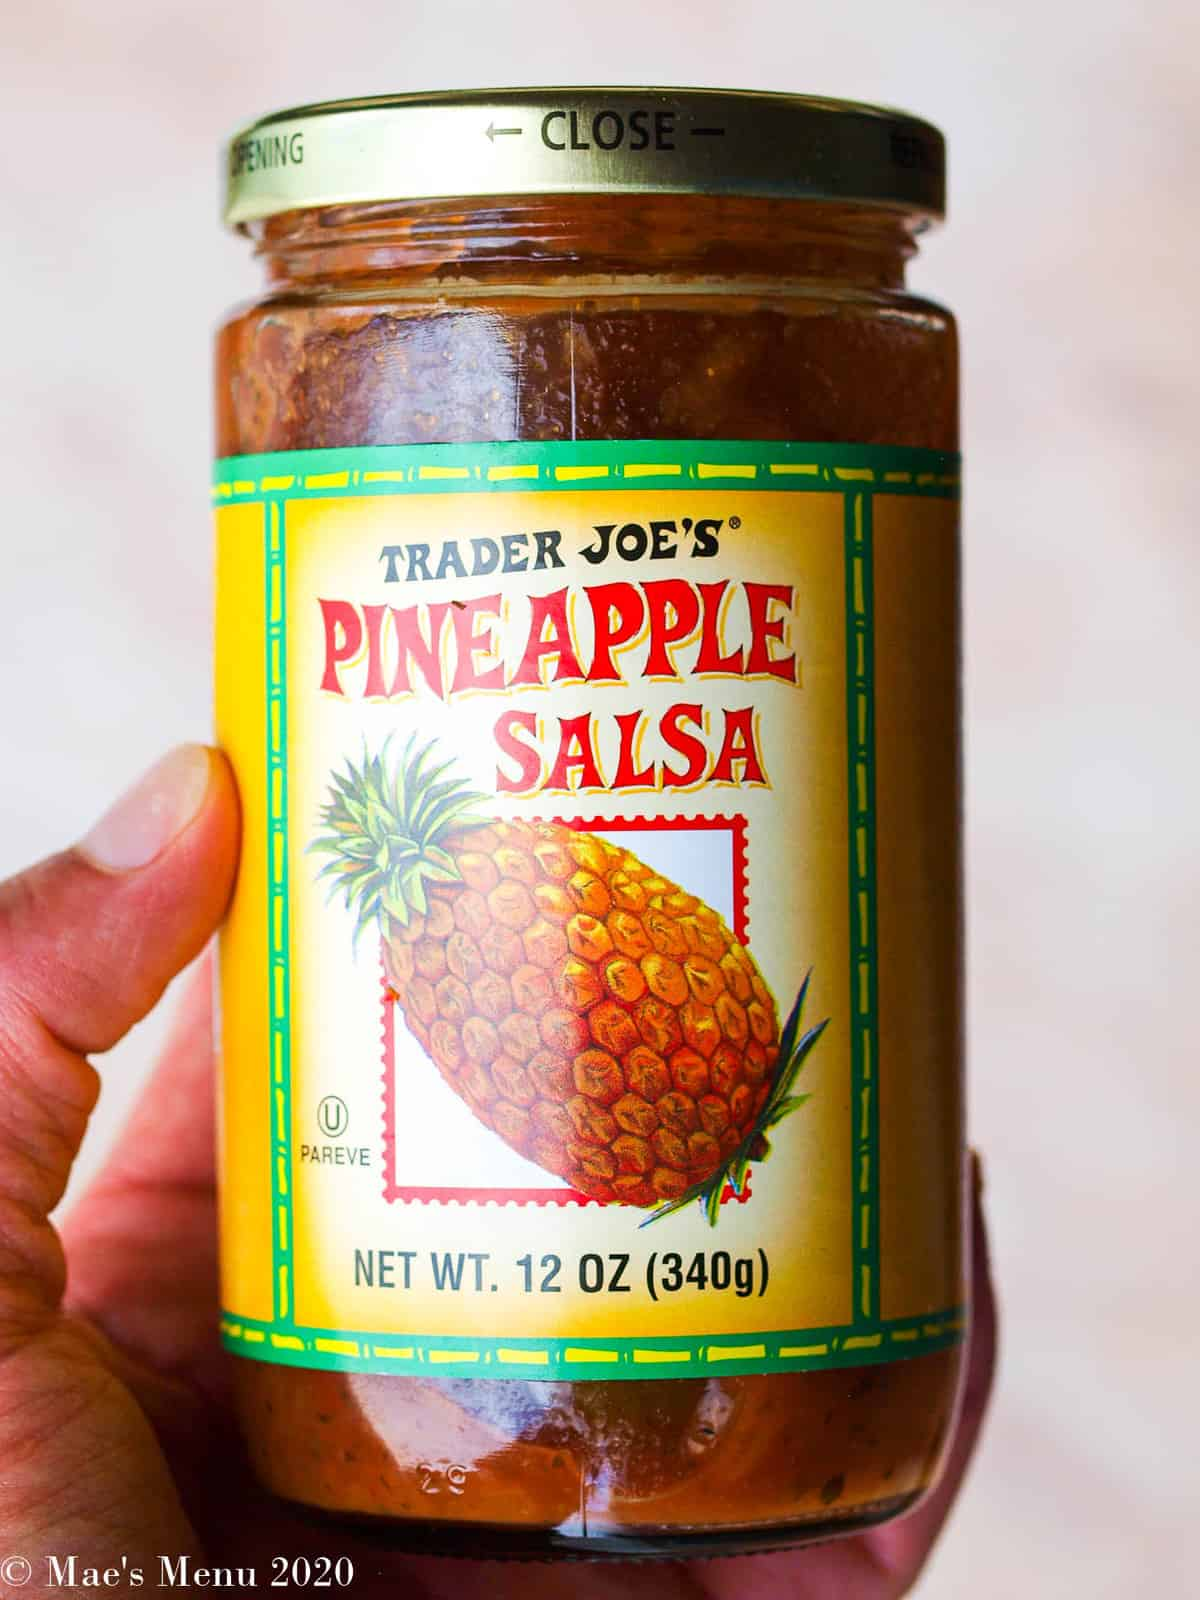 An up-close shot of a bottle of pineapple salsa.